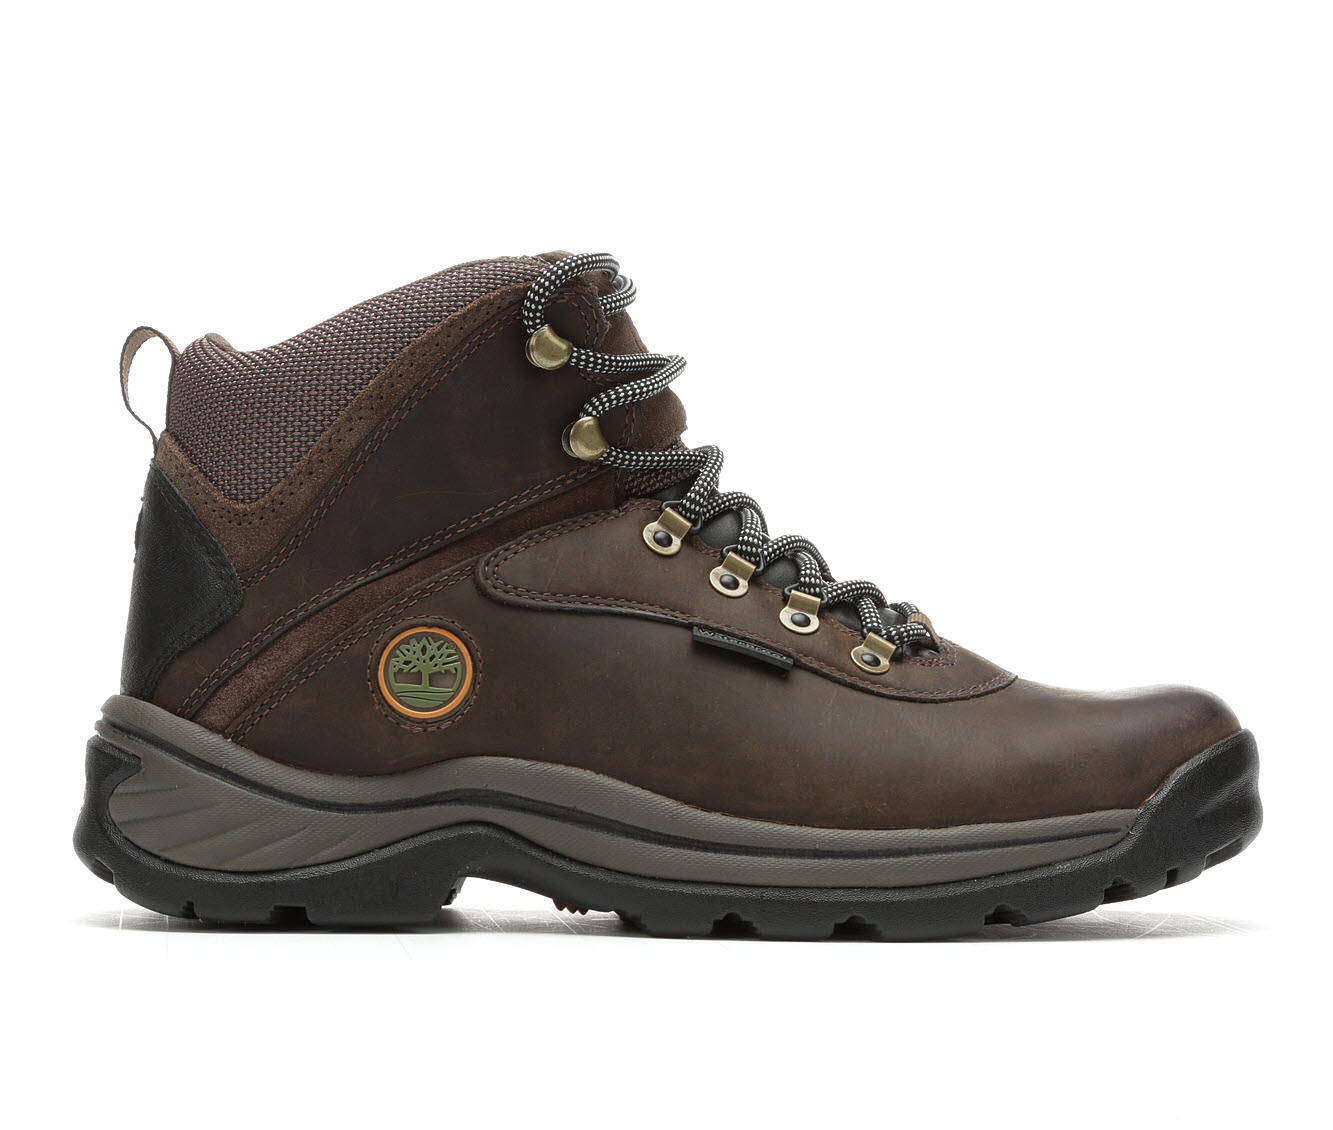 Timberland White Ledge Waterproof Men's Boots (Brown Leather)